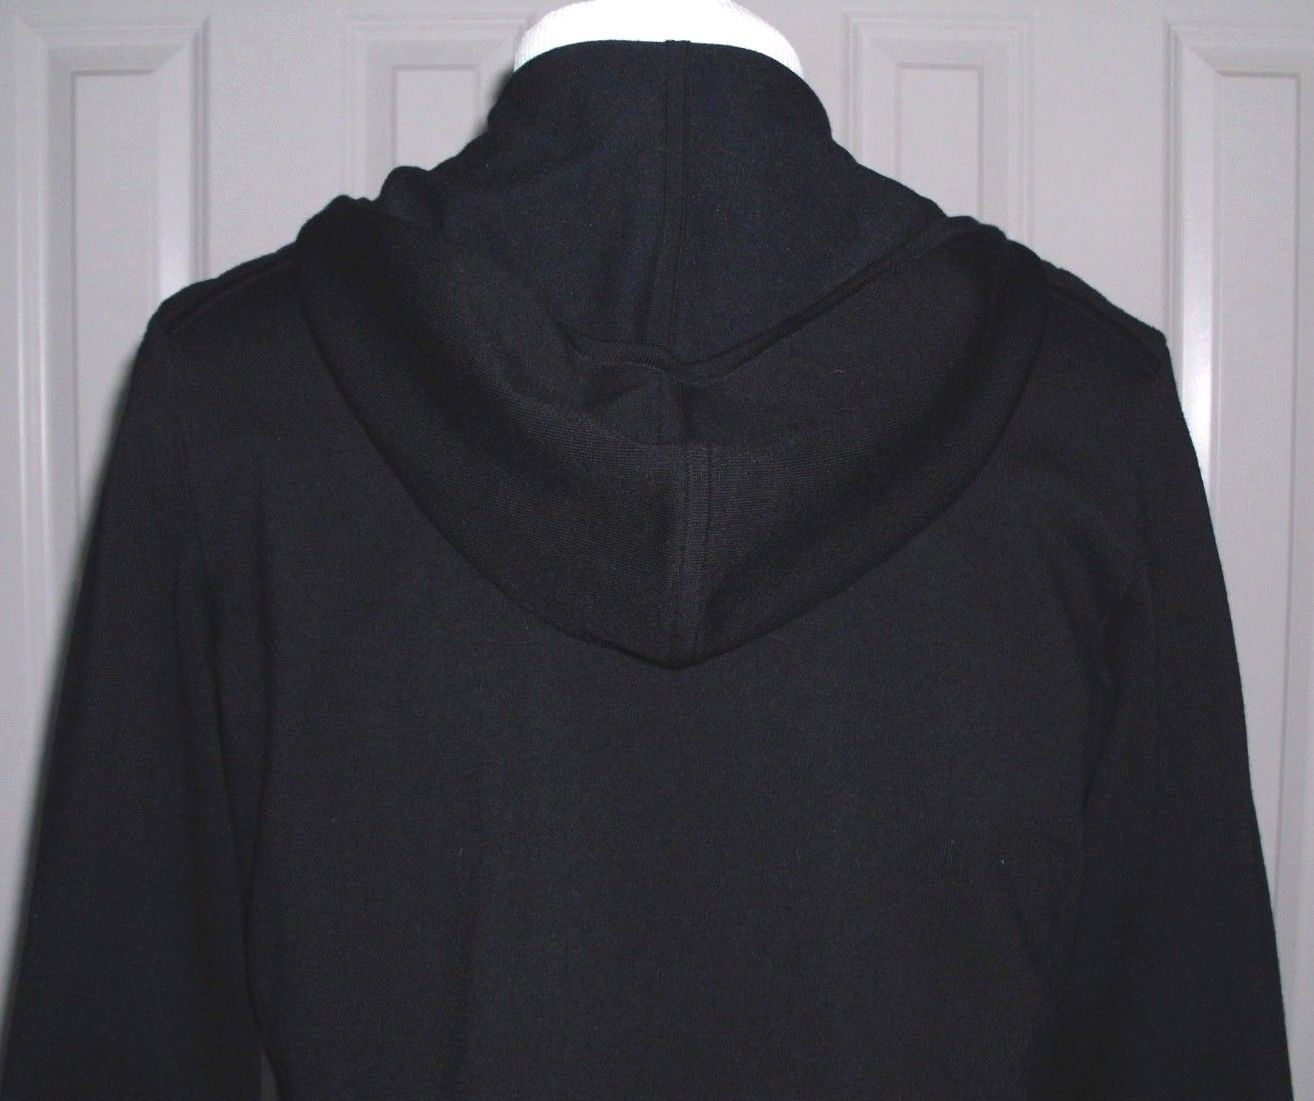 RALPH LAUREN BLACK LABEL WOMEN'S BIG PONY HOODIE JACKET MERINO BLEND SIZE LARGE